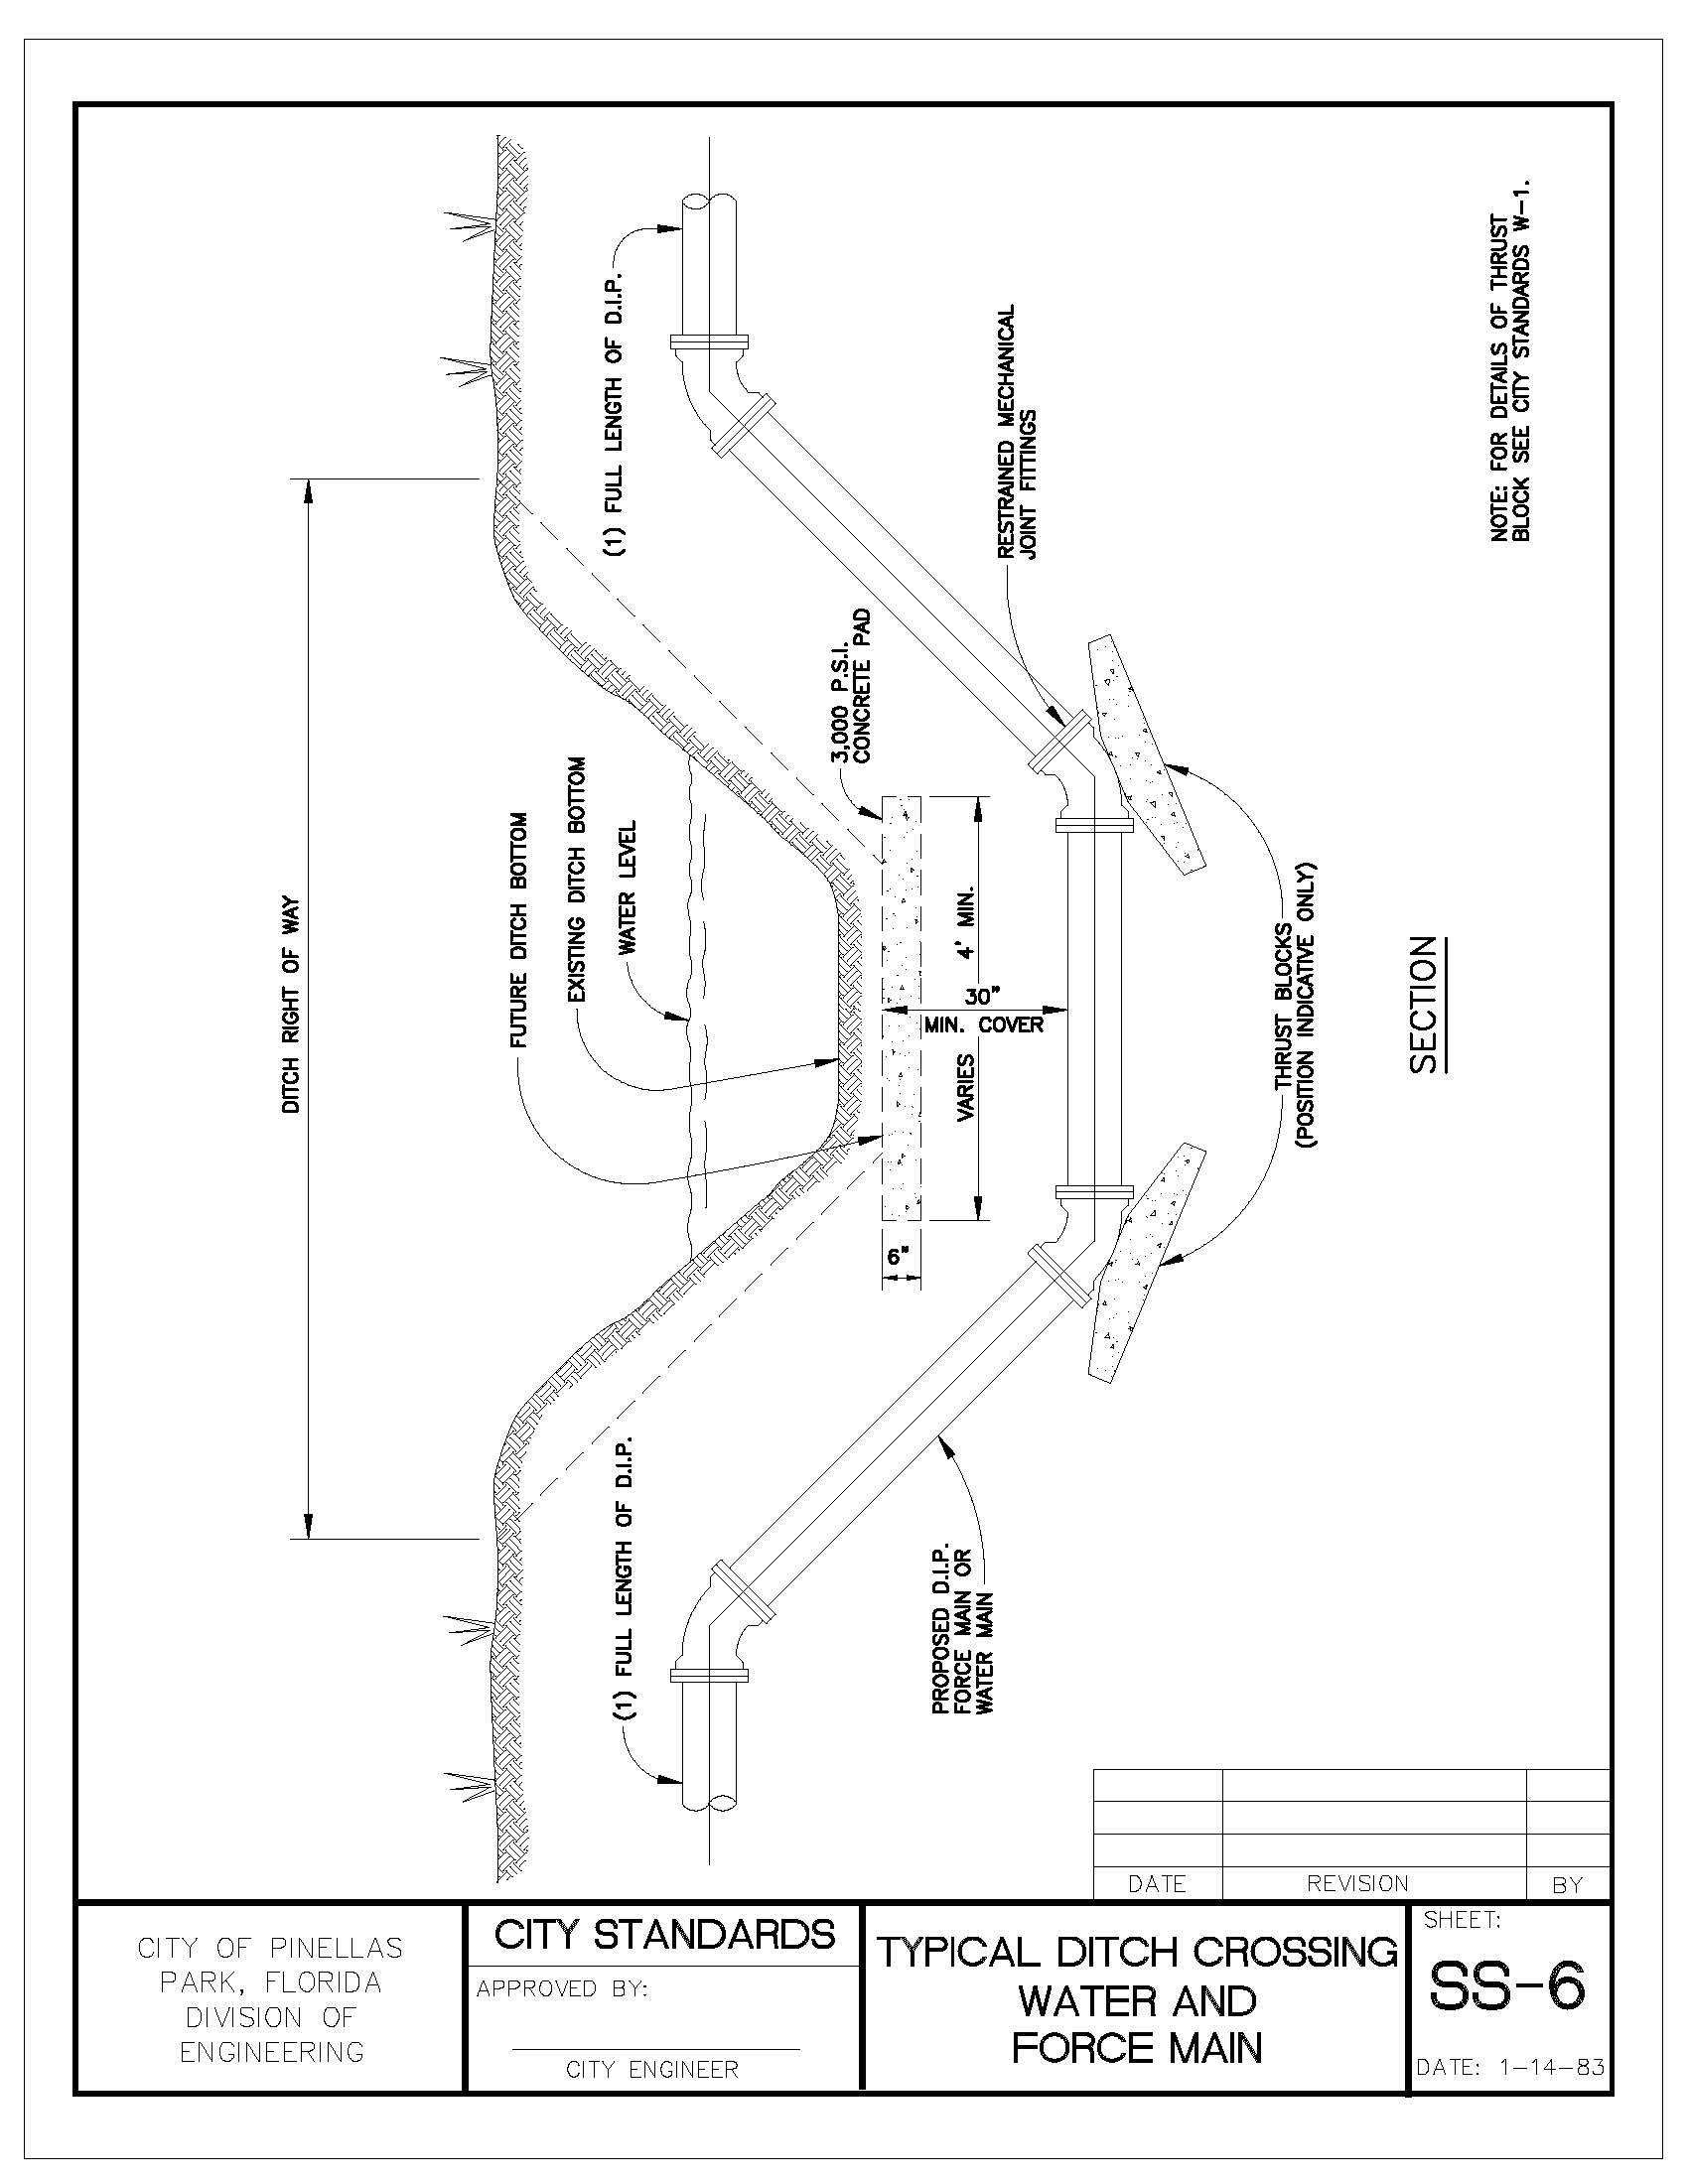 Engineering Manual v5_201908121127291138_Page_070 typical ditch crossing water and force main